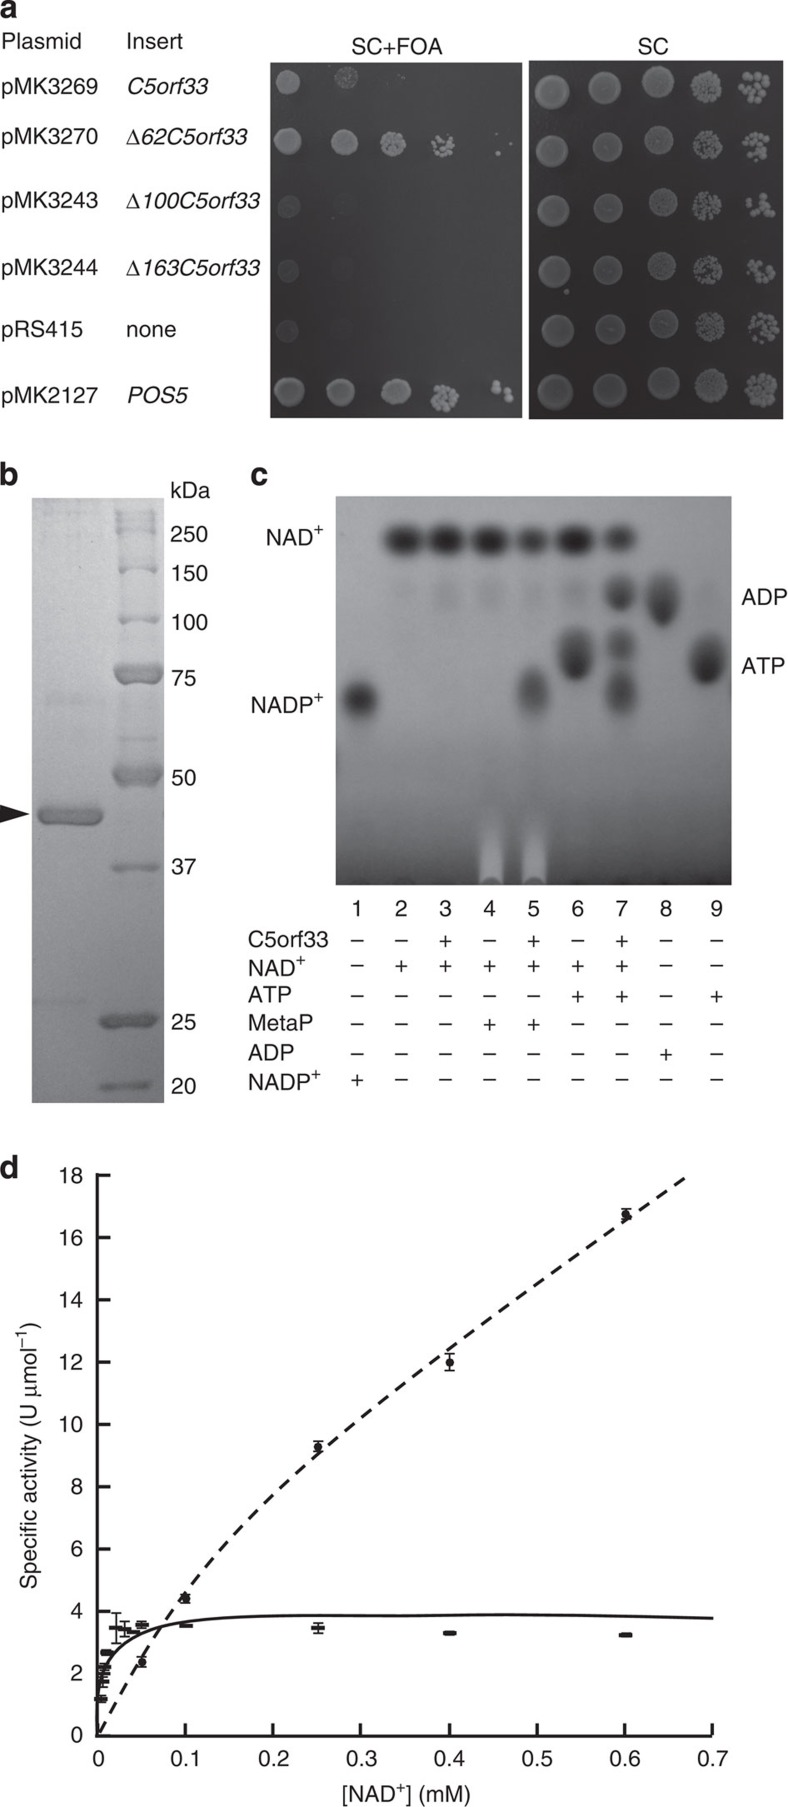 NADK activity of C5orf33 protein. ( a ) In vivo assay of NADK activity of C5orf33 protein. S. cerevisiae MK1598 cells (an NADK triple mutant having YCplac33- UTR1 ) carrying the indicated plasmids were spotted onto the solid media and were incubated at 30 °C for 4 days. C5orf33 protein was less effective than Δ62C5orf33 protein in reverting the lethality. We speculate that this is because in the yeast, human C5orf33 is less able to supply cytosolic NADP + than the yeast mitochondrial Pos5 itself. ( b ) SDS–PAGE of purified C5orf33 protein (arrowhead; 43 kDa). ( c ) NADK activity of purified C5orf33 protein analysed by TLC in the presence (+) or absence (−) of indicated compounds as described in the Methods. ( d ) Saturation curves for NAD + of purified human NADK (dashed line) 29 and C5orf33 protein (line) determined under 8 and 2 mM ATP, respectively. The specific activity (U μmol−1; 1 μmol NADP + produced per 1 min and 1 μmol subunit of the enzyme) was calculated using the subunit molecular mass of C5orf33 protein (45 kDa) or human NADK (43 kDa) ( Table 1 ). Each point represents the average of three determinations; error bars represent s.d.